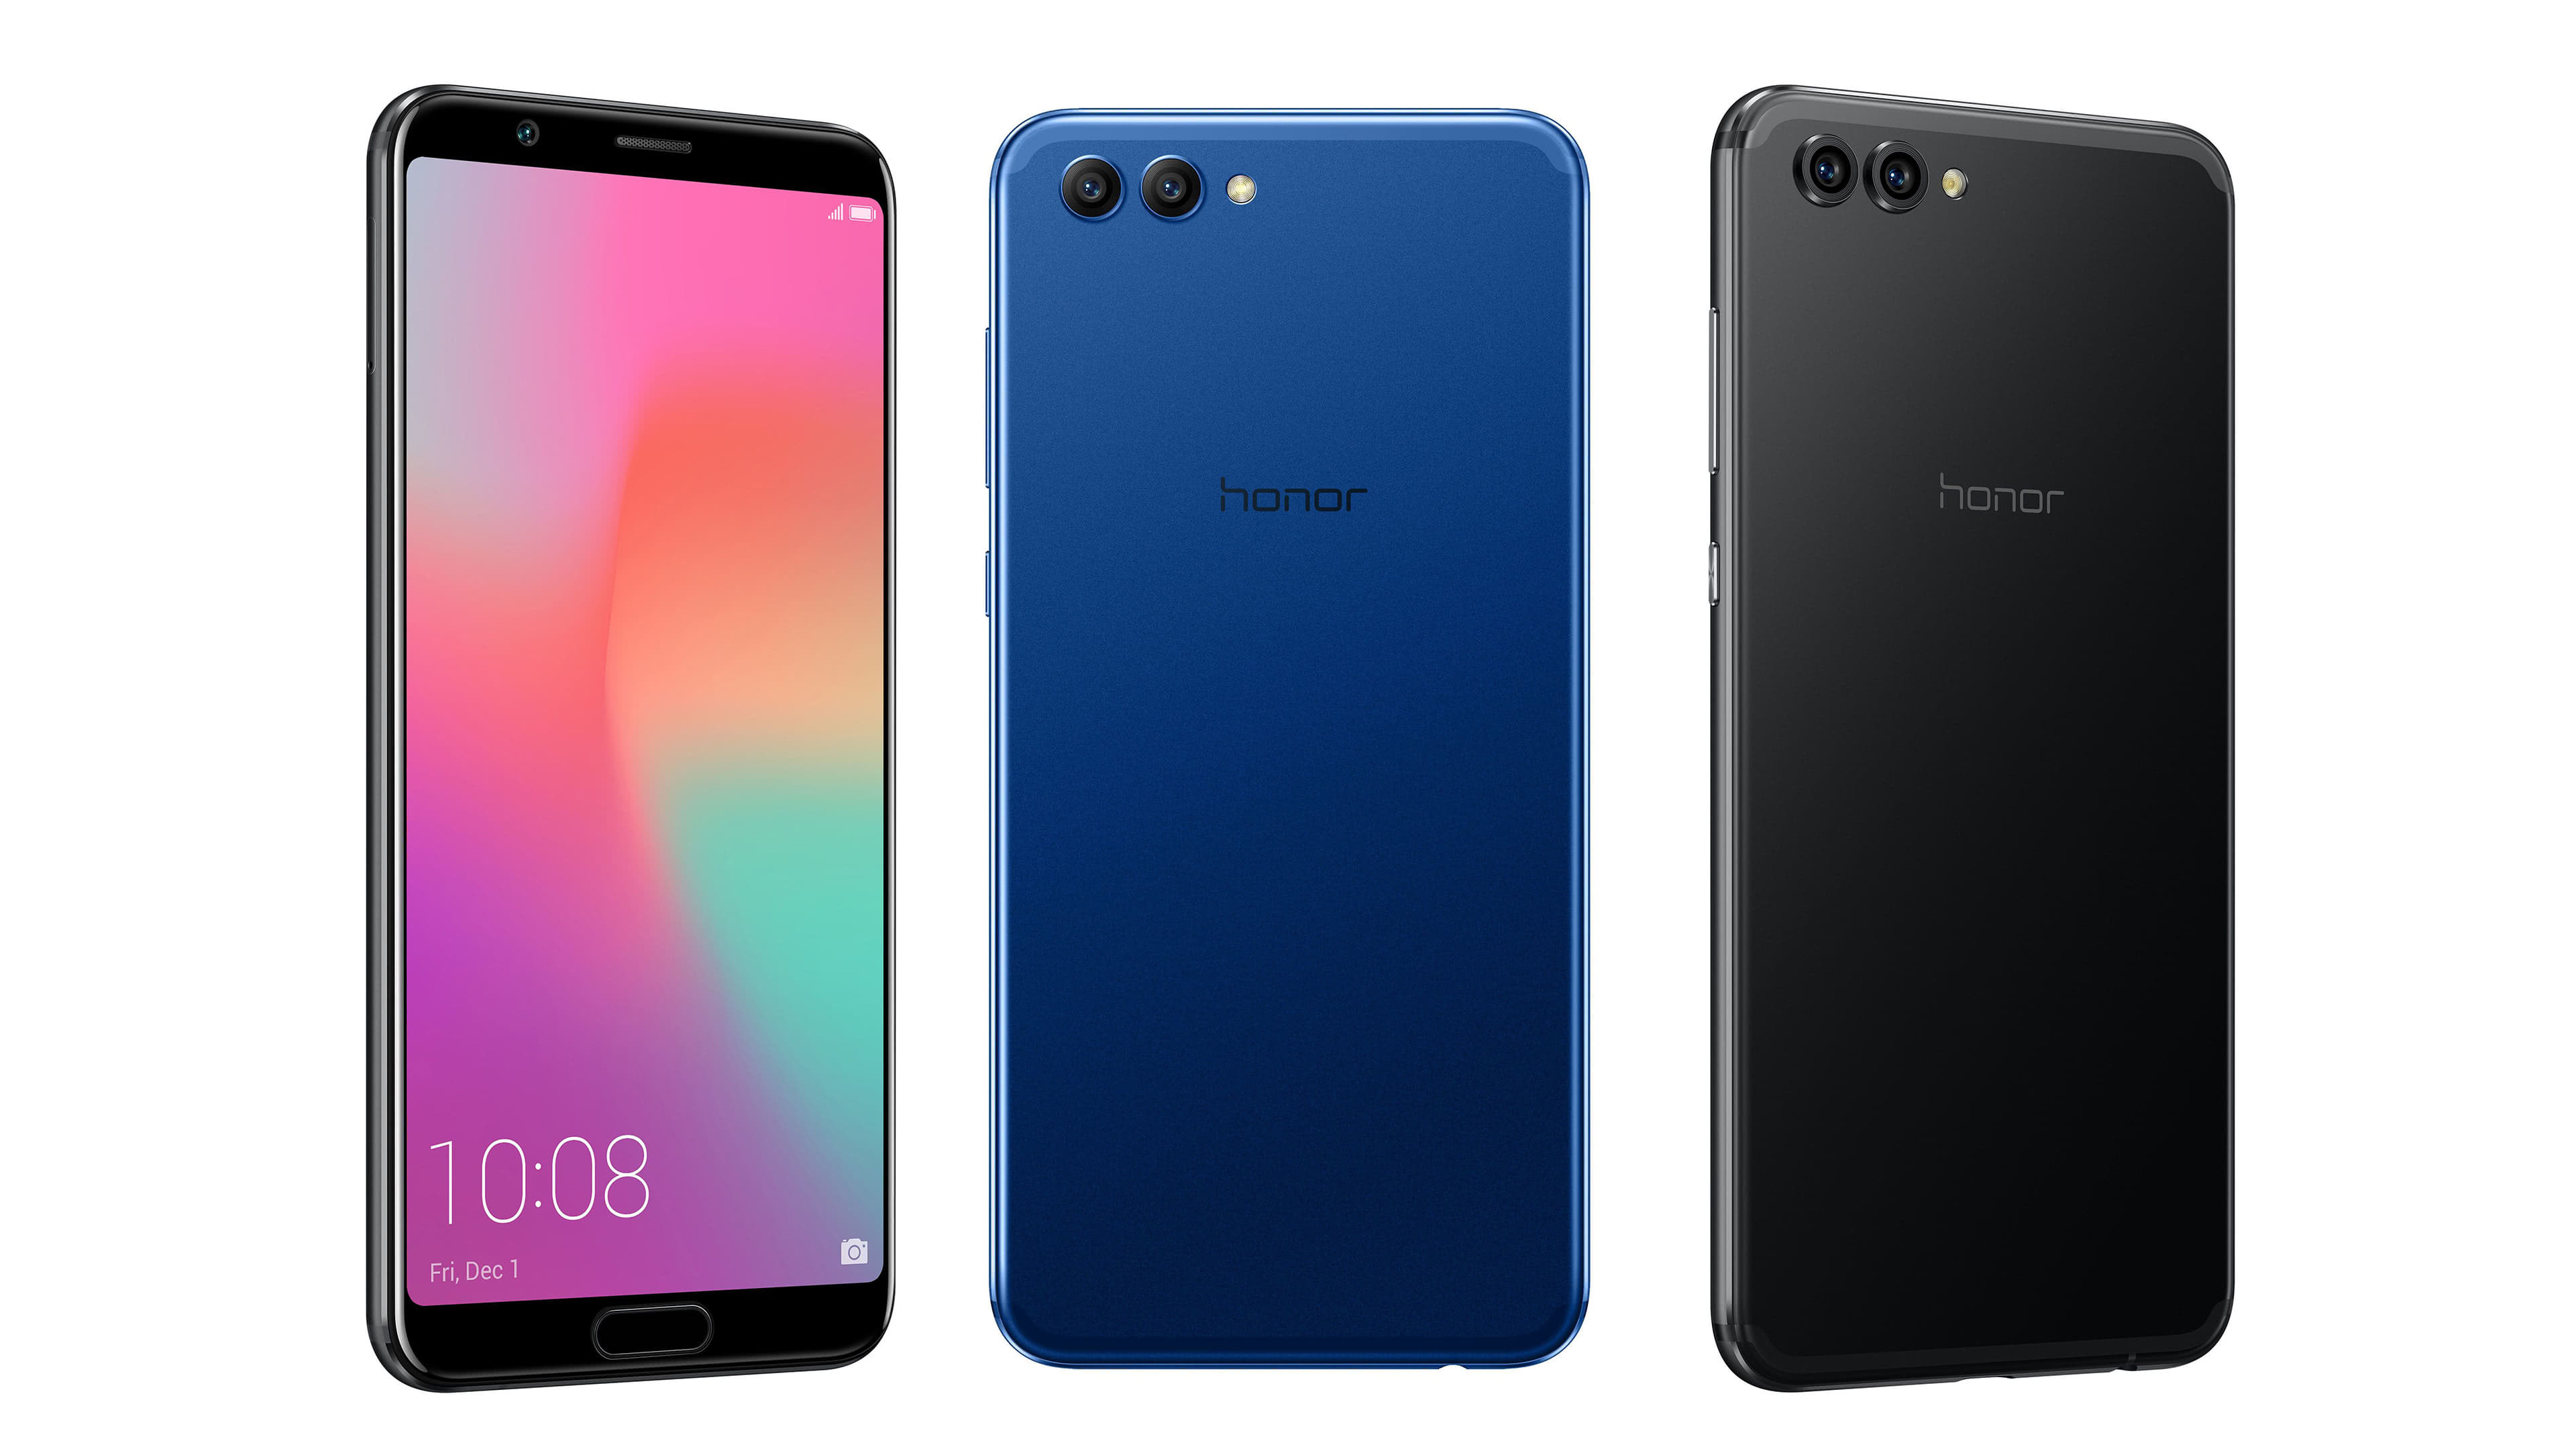 huawei honor view 10 uhd 4k wallpaper